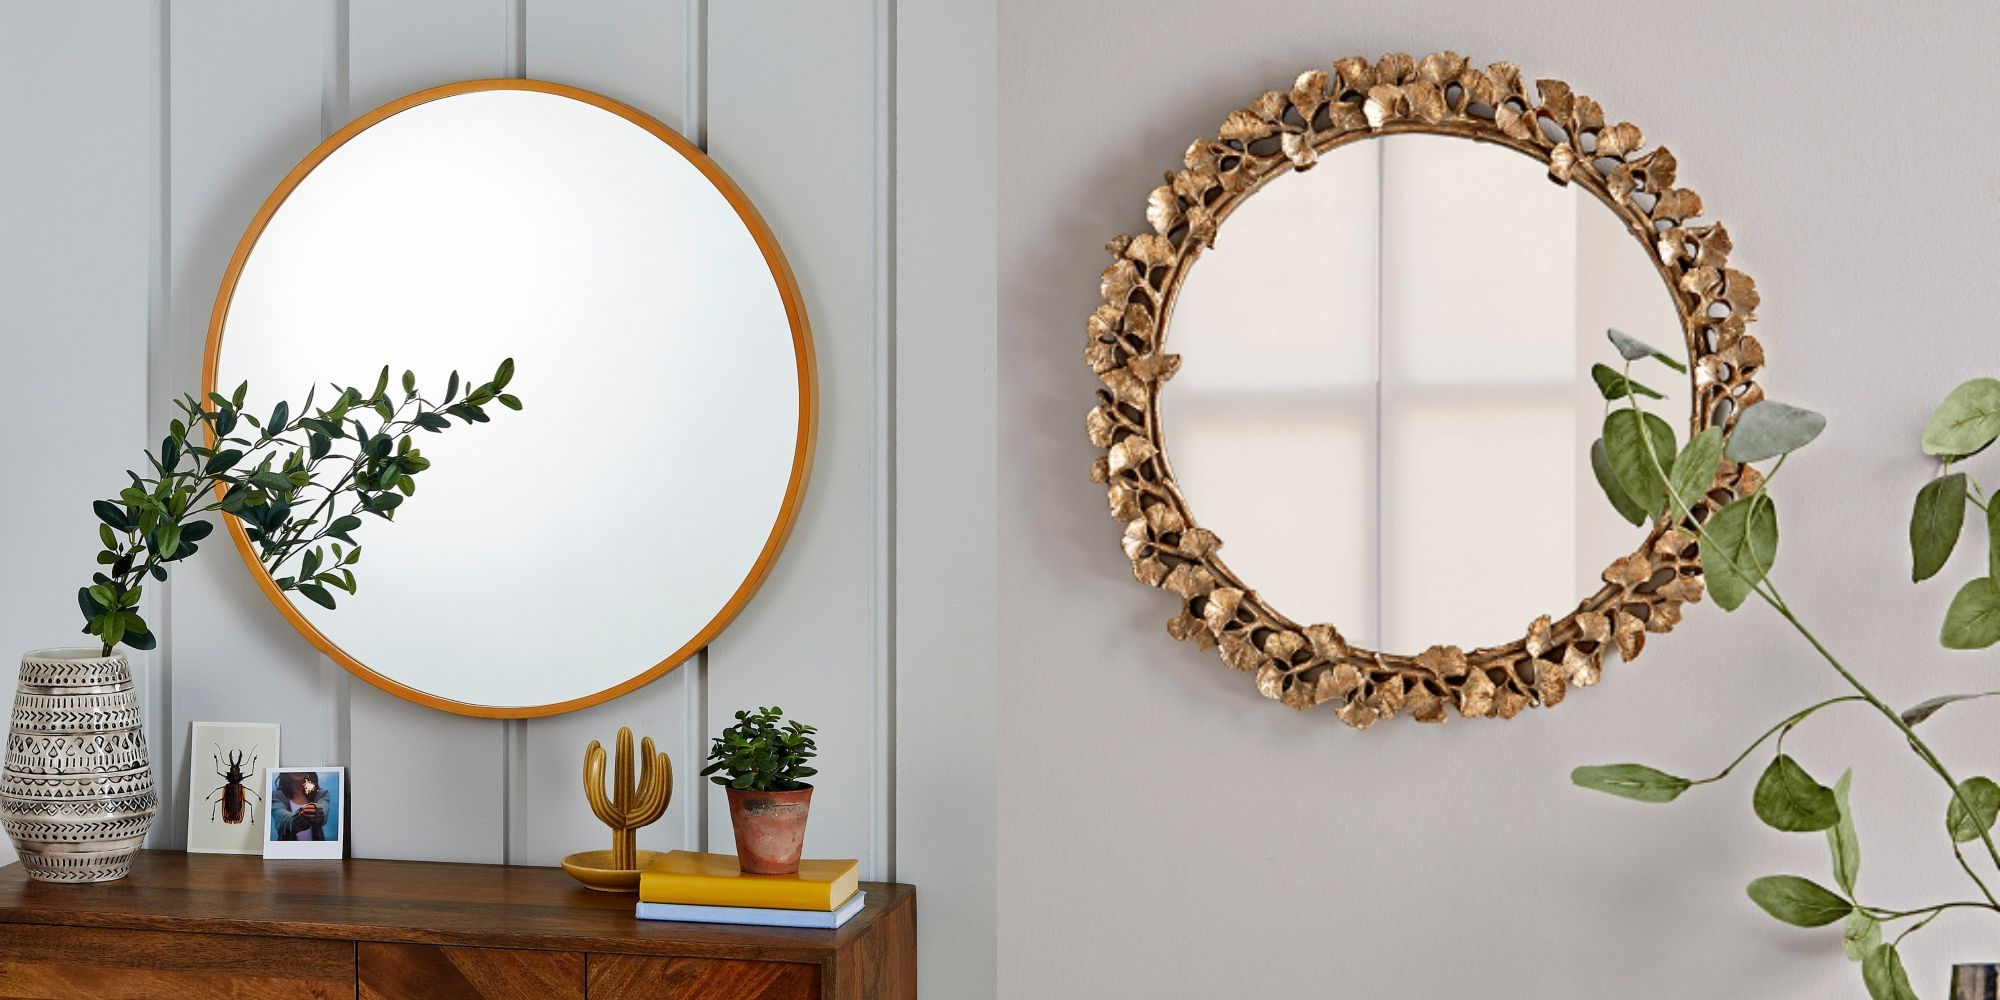 Small Round Wall Mirrors Inside Latest 7 Statement Round Wall Mirrors To Buy For Your Home (View 16 of 20)